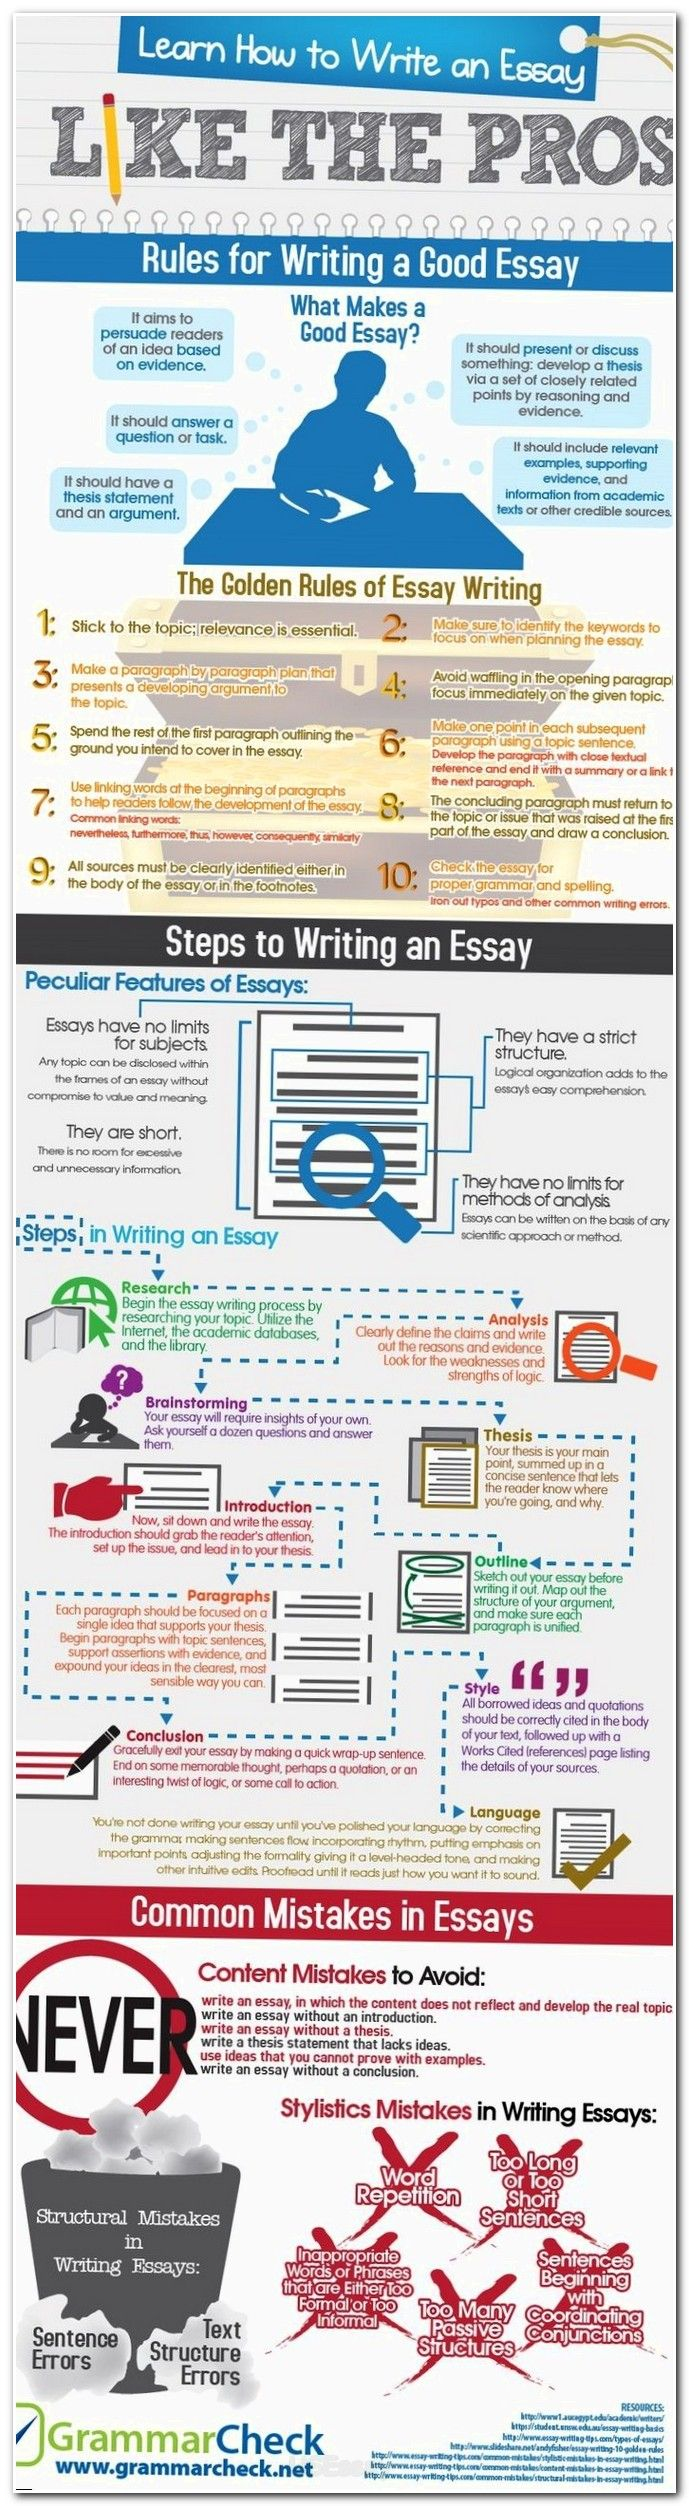 the best essay competition ideas essay writing essay essaywriting songs to write essays about term paper topics for english